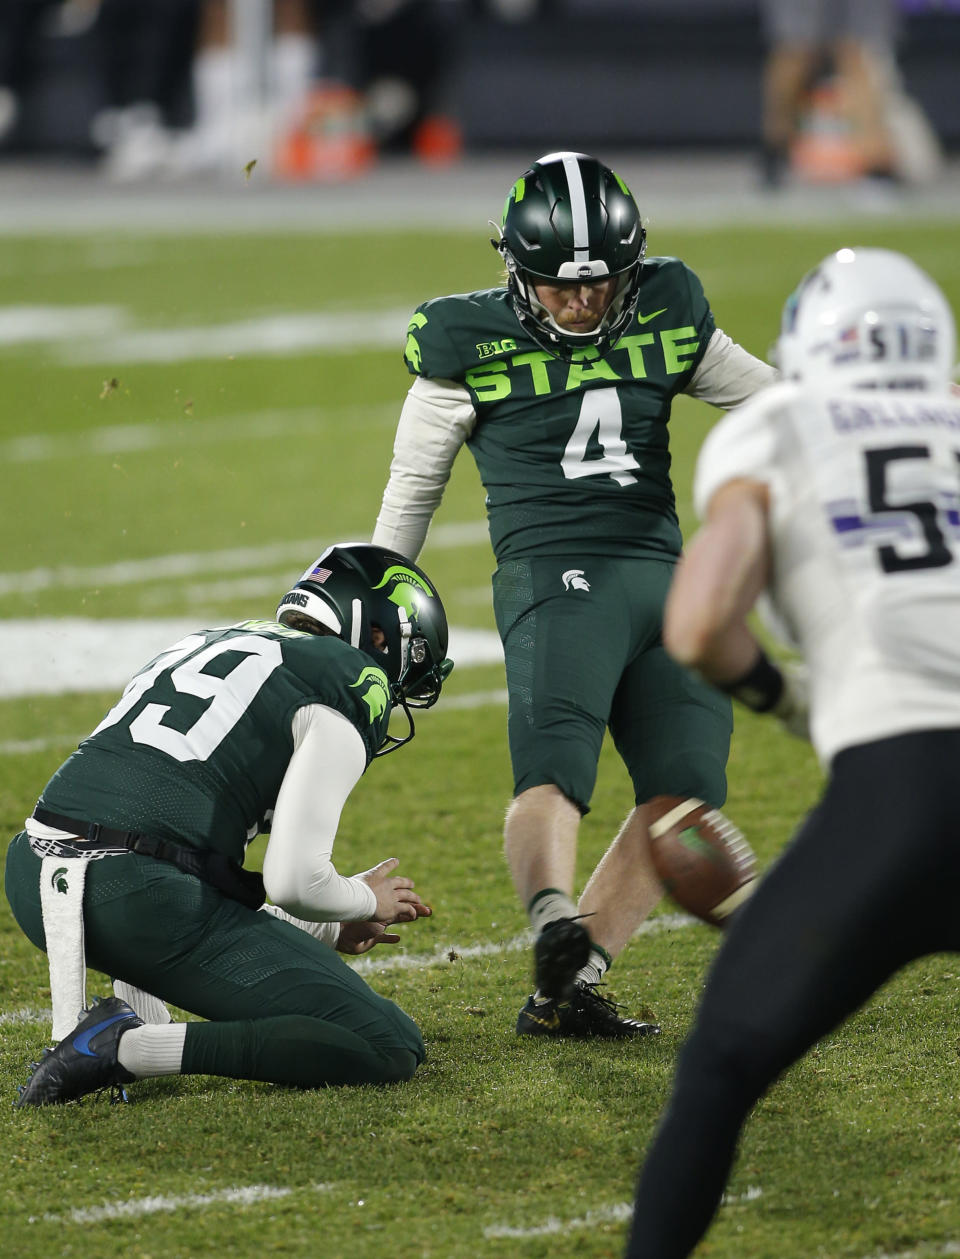 Michigan State's Matt Coghlin (4) kicks a field goal as Bryce Baringer, left, holds during the fourth quarter of an NCAA college football game against Northwestern, Saturday, Nov. 28, 2020, in East Lansing, Mich. (AP Photo/Al Goldis)